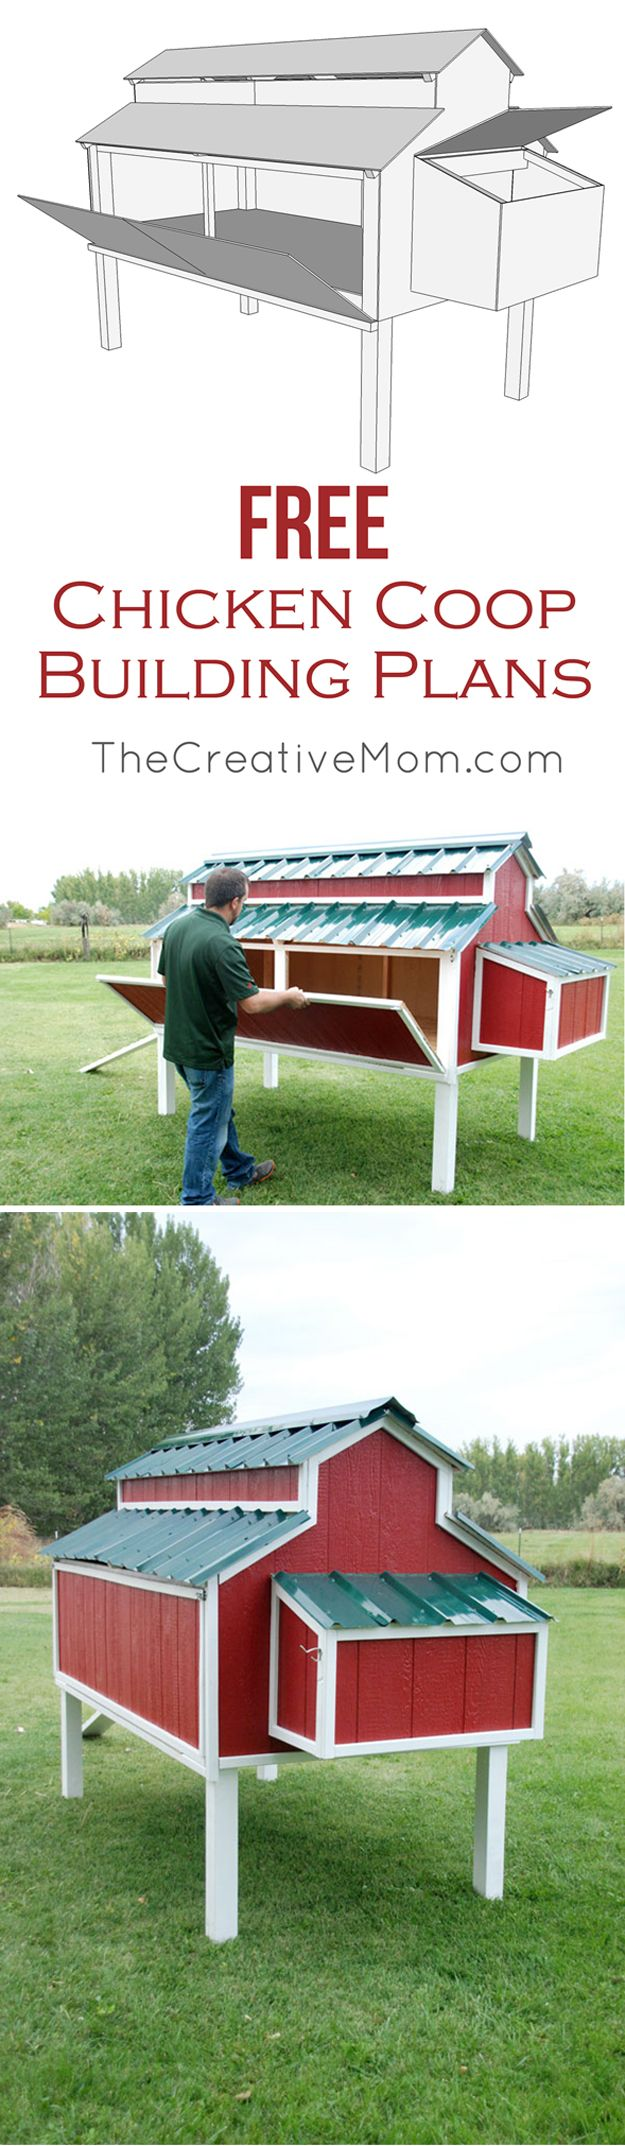 15 more awesome chicken coop designs and ideas how to make a house for the